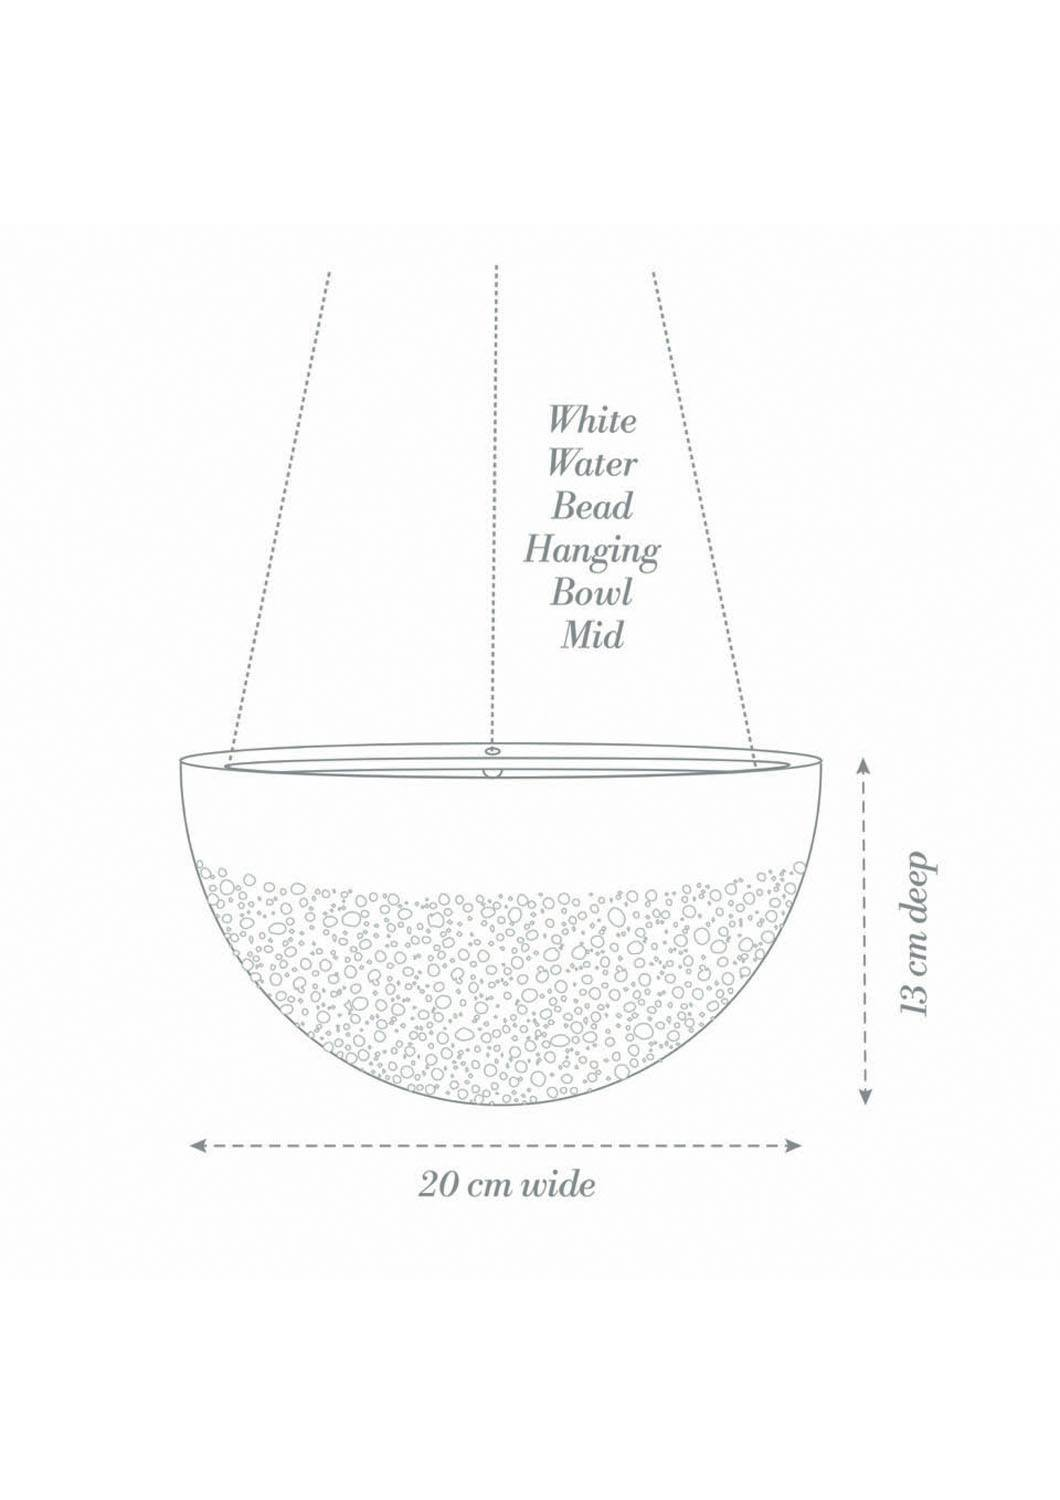 Angus & Celeste White Water Bead Hanging Planter Mid Product Diagram